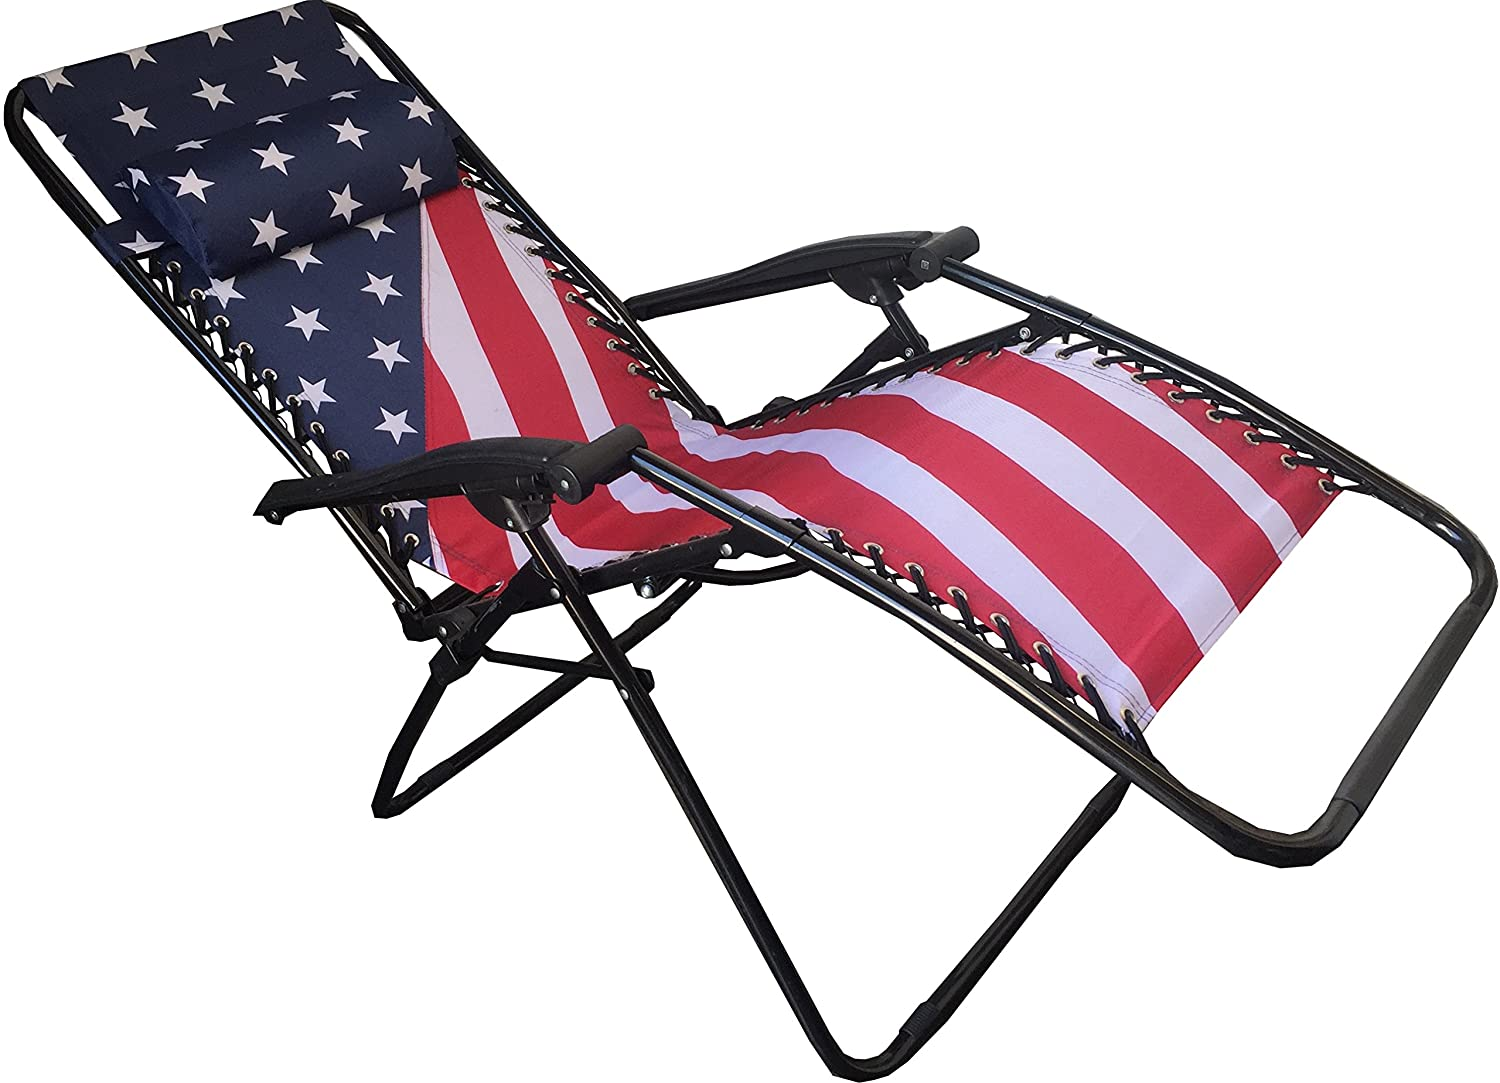 Astounding World Famous Sports Stars And Stripes Zero Gravity Lounge Chair Red White Blue 69 X 43X 43 Machost Co Dining Chair Design Ideas Machostcouk